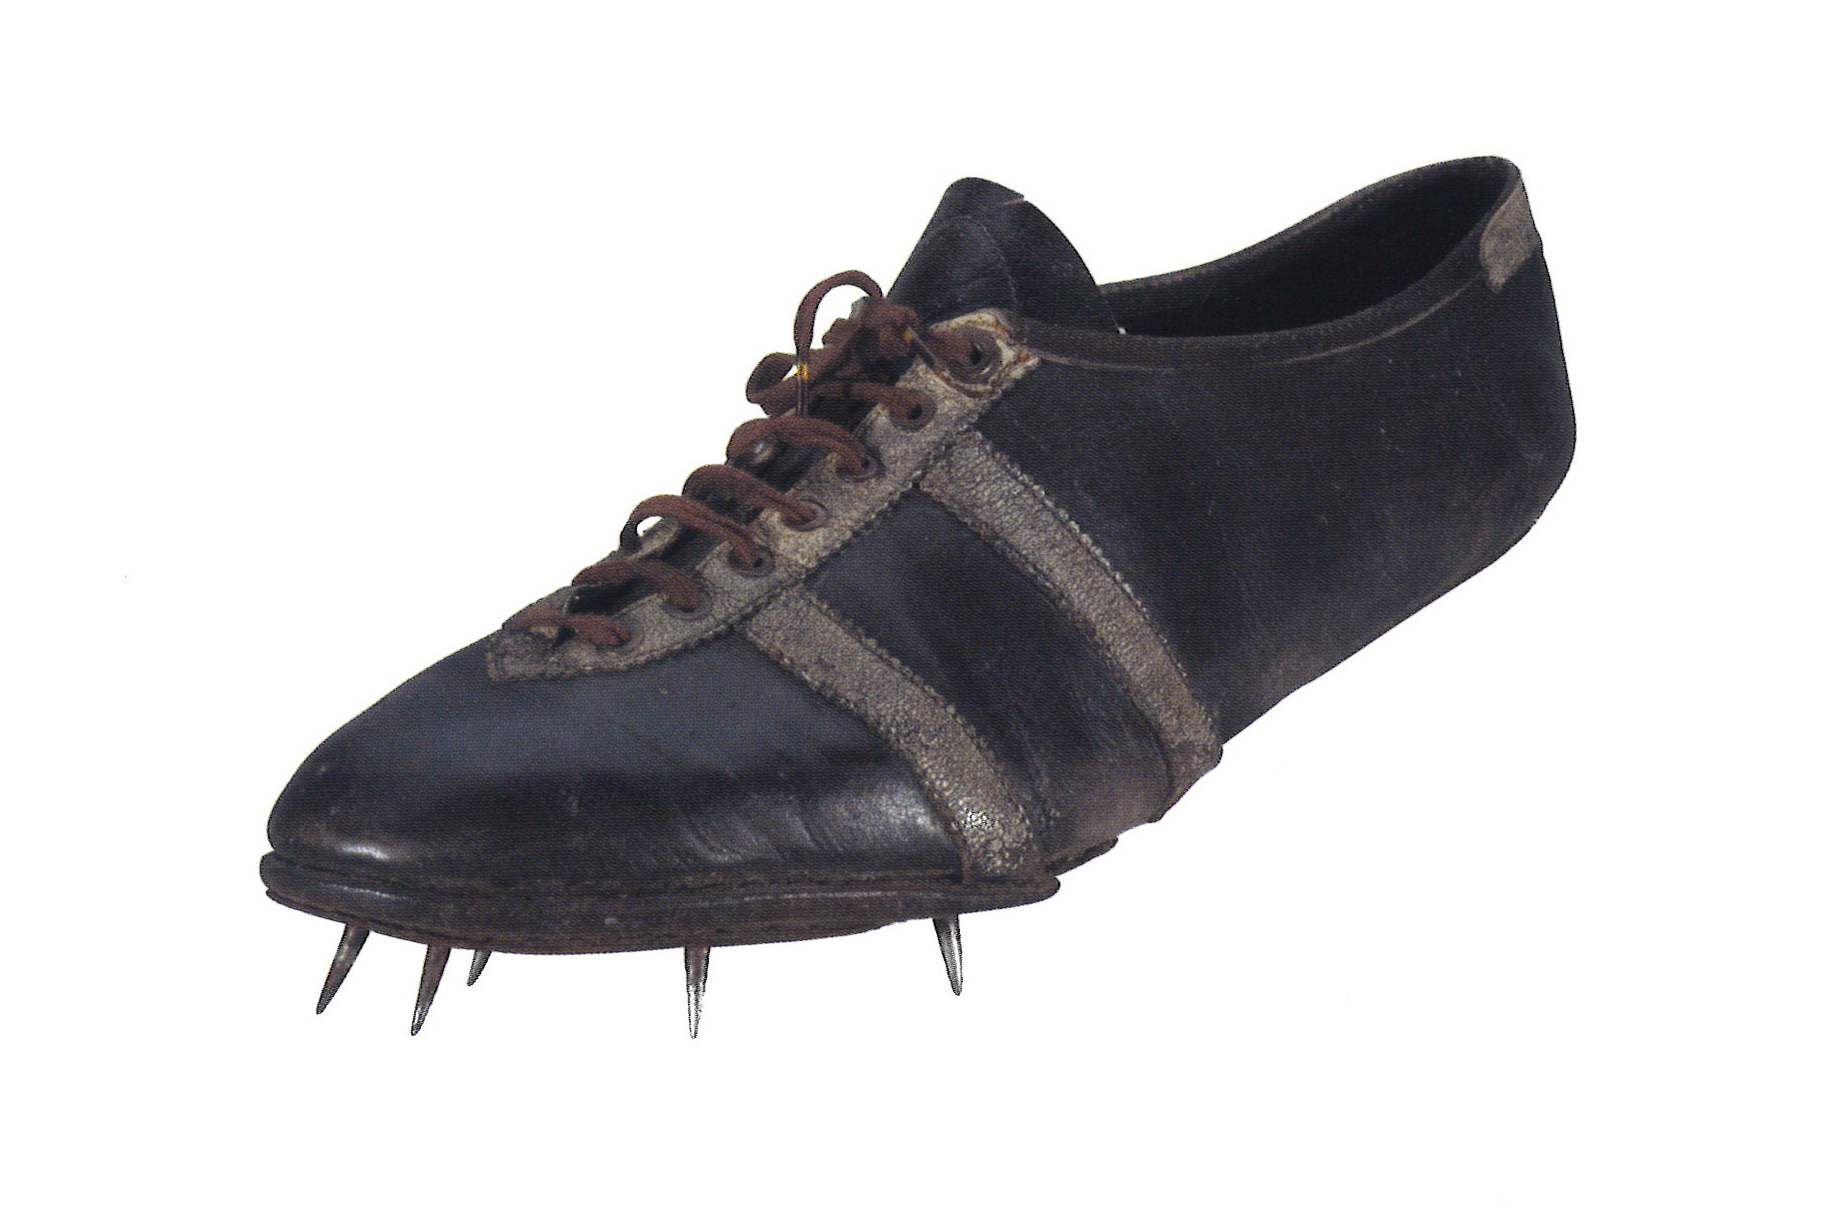 How To Stop Leather Soled Shoes From Slipping